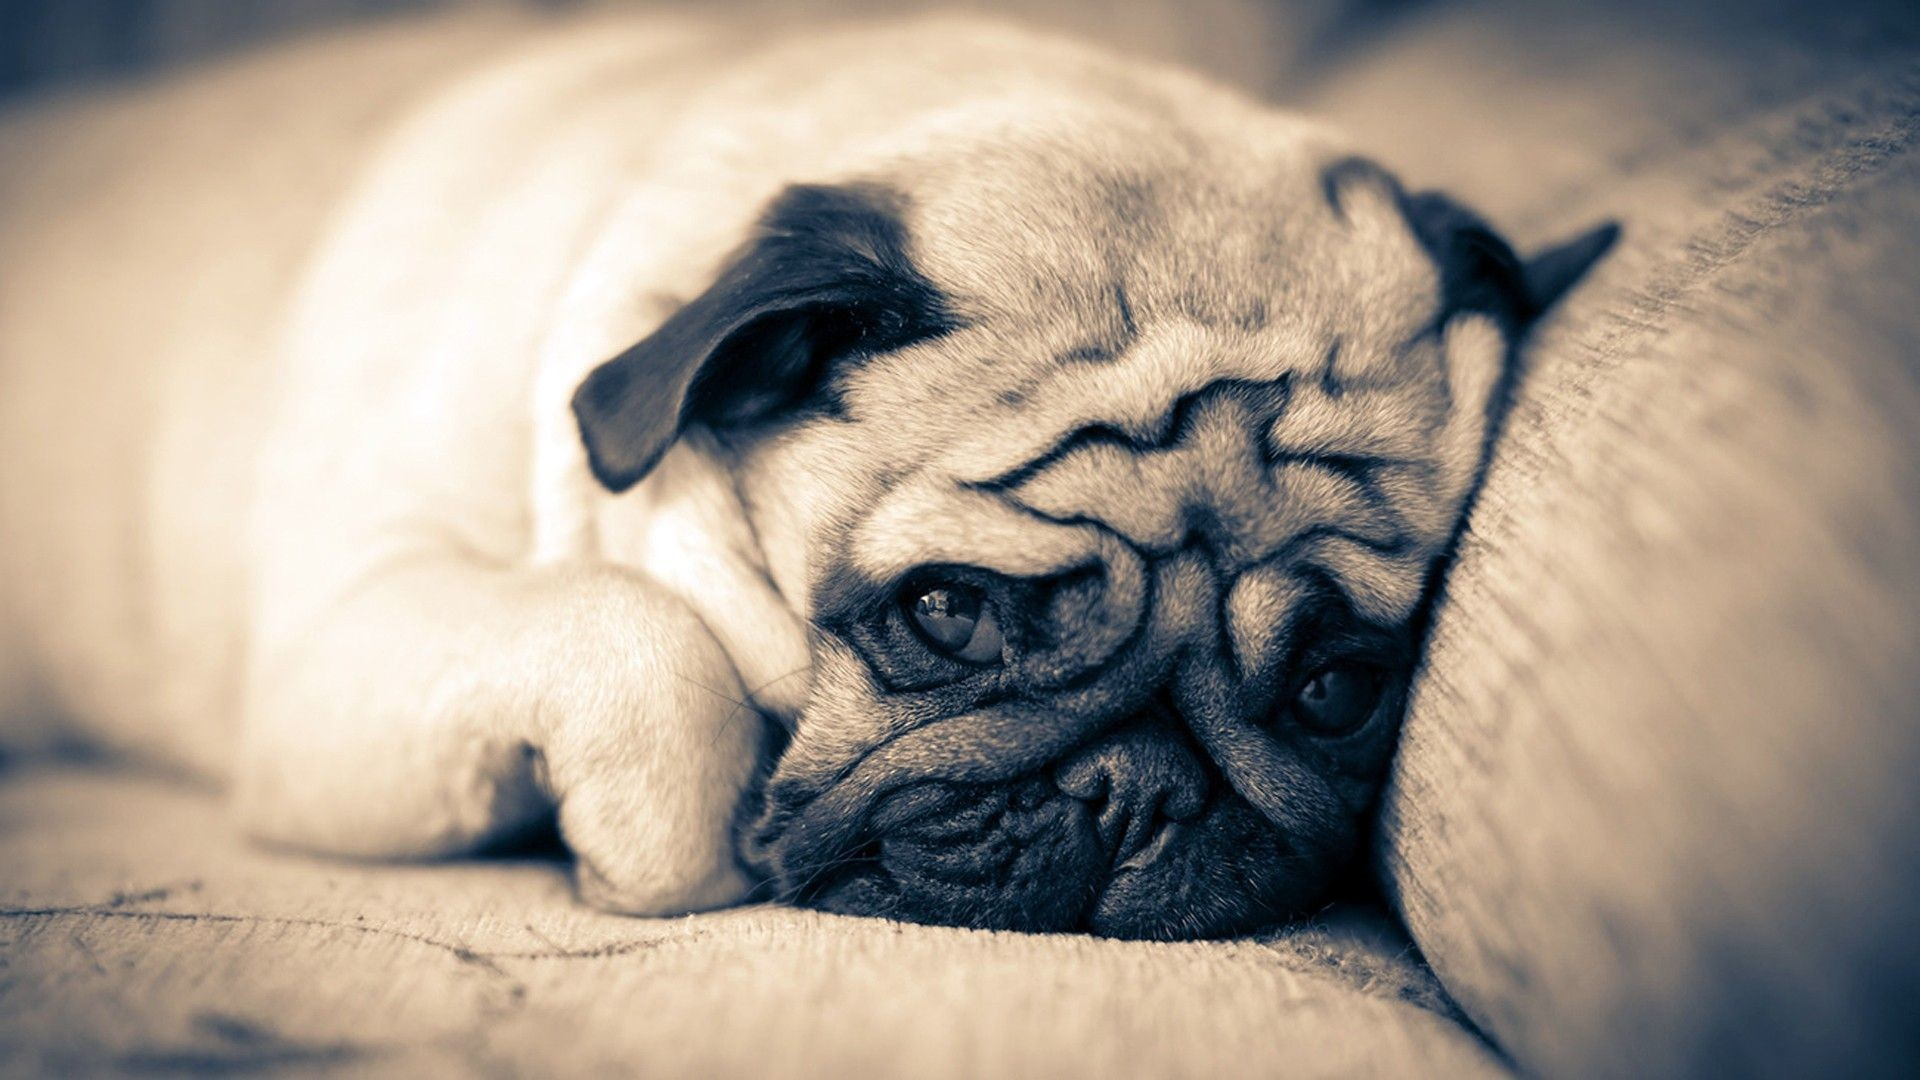 1920x1080 Pug Wallpapers keywords HERE 1920×1080 Pug Wallpaper (37 Wallpapers) | Adorable  Wallpapers